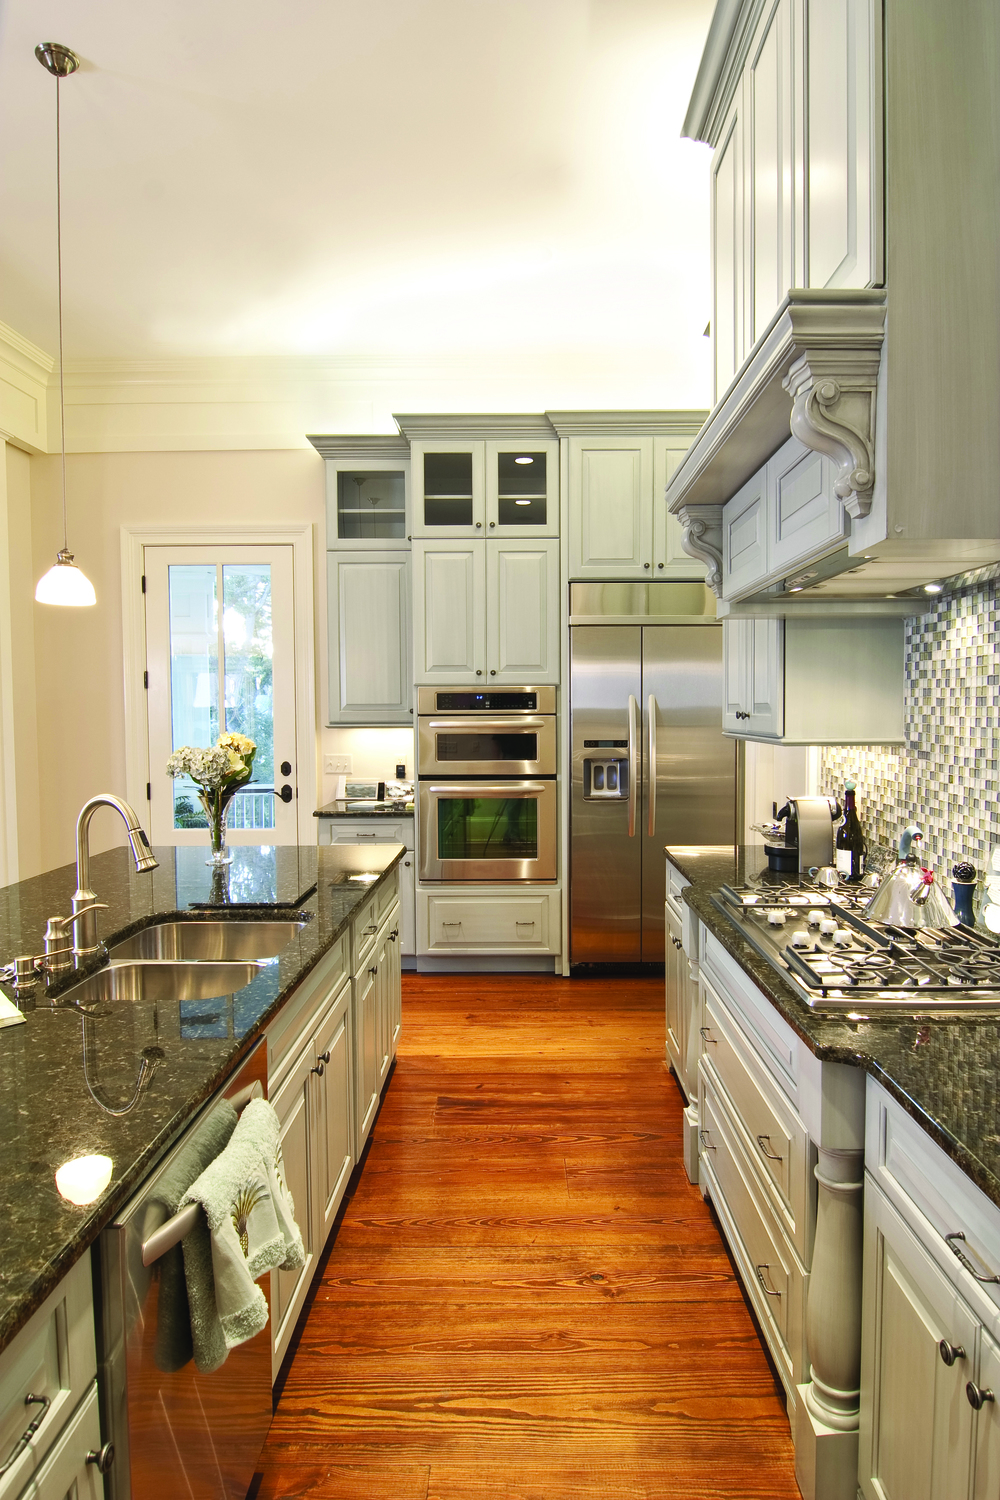 (4)bigstock-beautiful-custom-kitchen-with--18525293.jpg